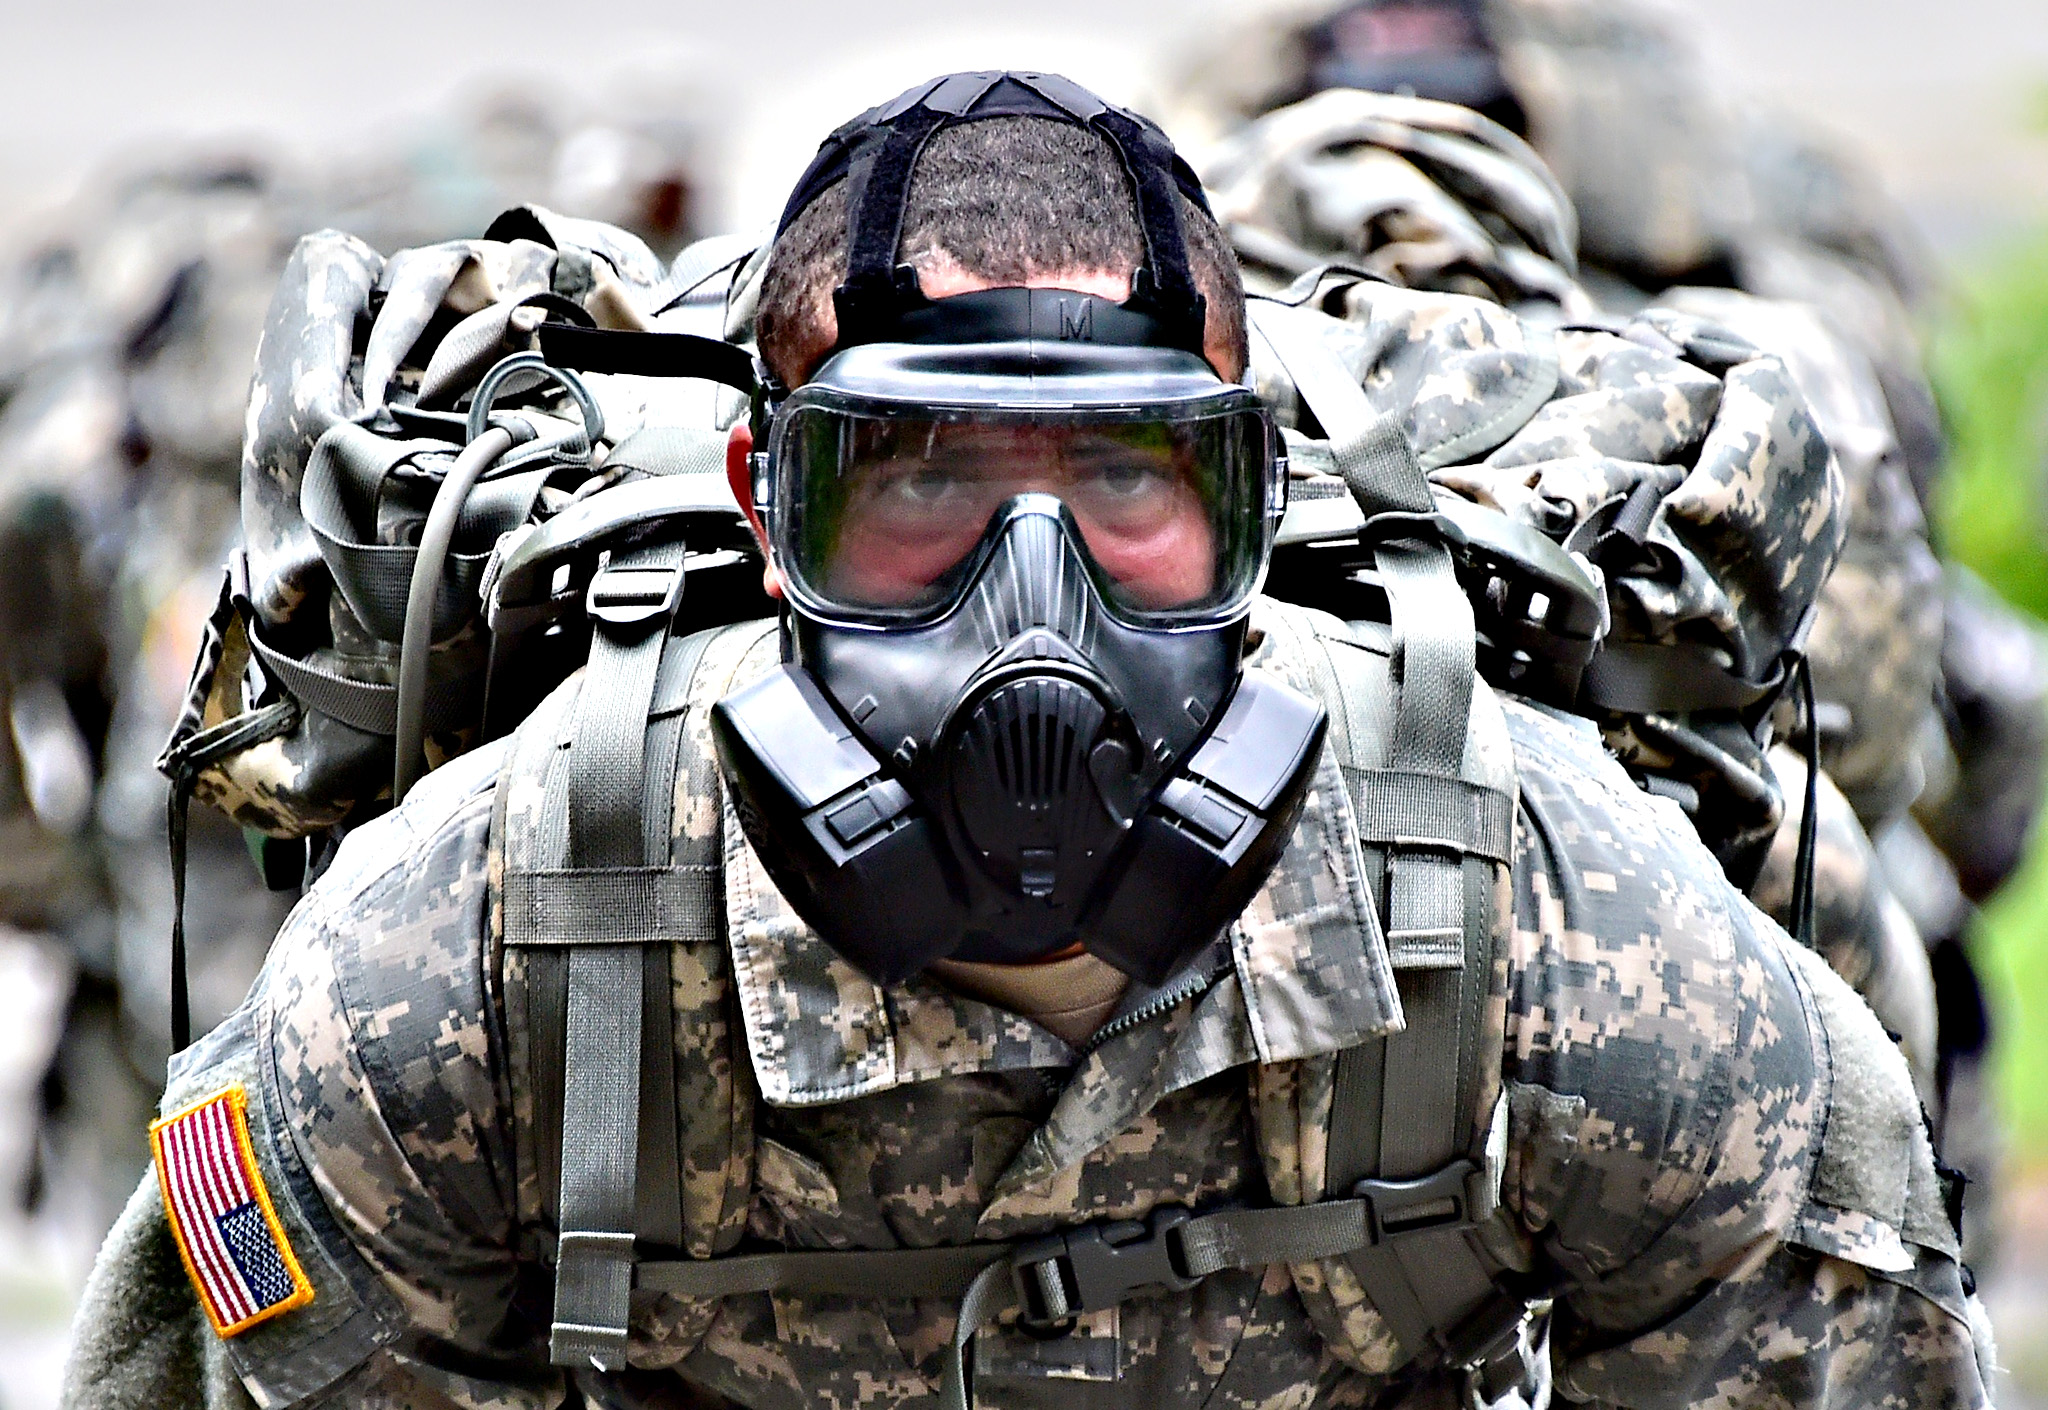 A US soldier wears a gas mask during a competition to test individual skills at a US Army base in Uijeongbu, north of Seoul, on July 8, 2015. The goal of the competition is to foster esprit de corps across the units participating and to continue to strengthen the US-South Korea alliance.